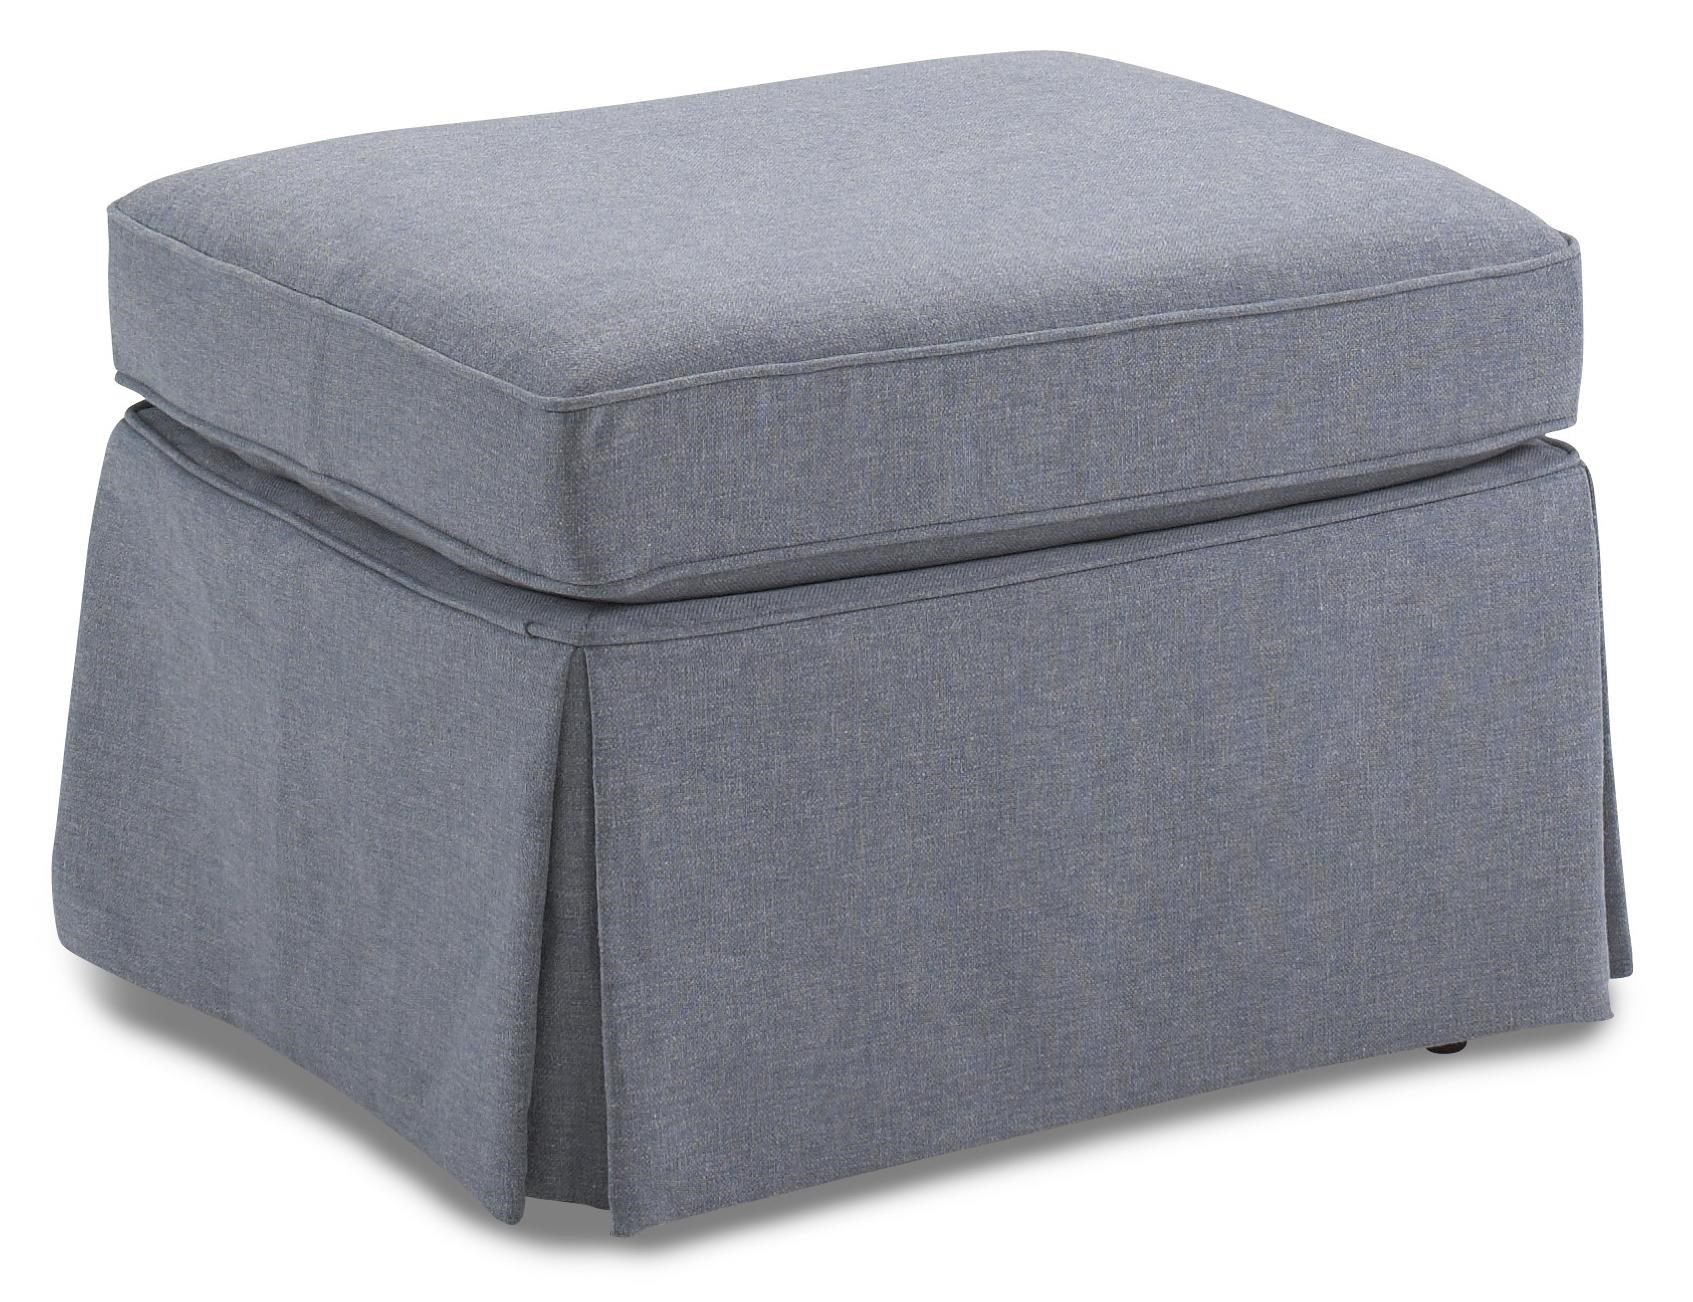 Best Chairs Storytime Series Storytime Swivel Chairs And Ottomans Glide  Ottoman With Tall Skirt